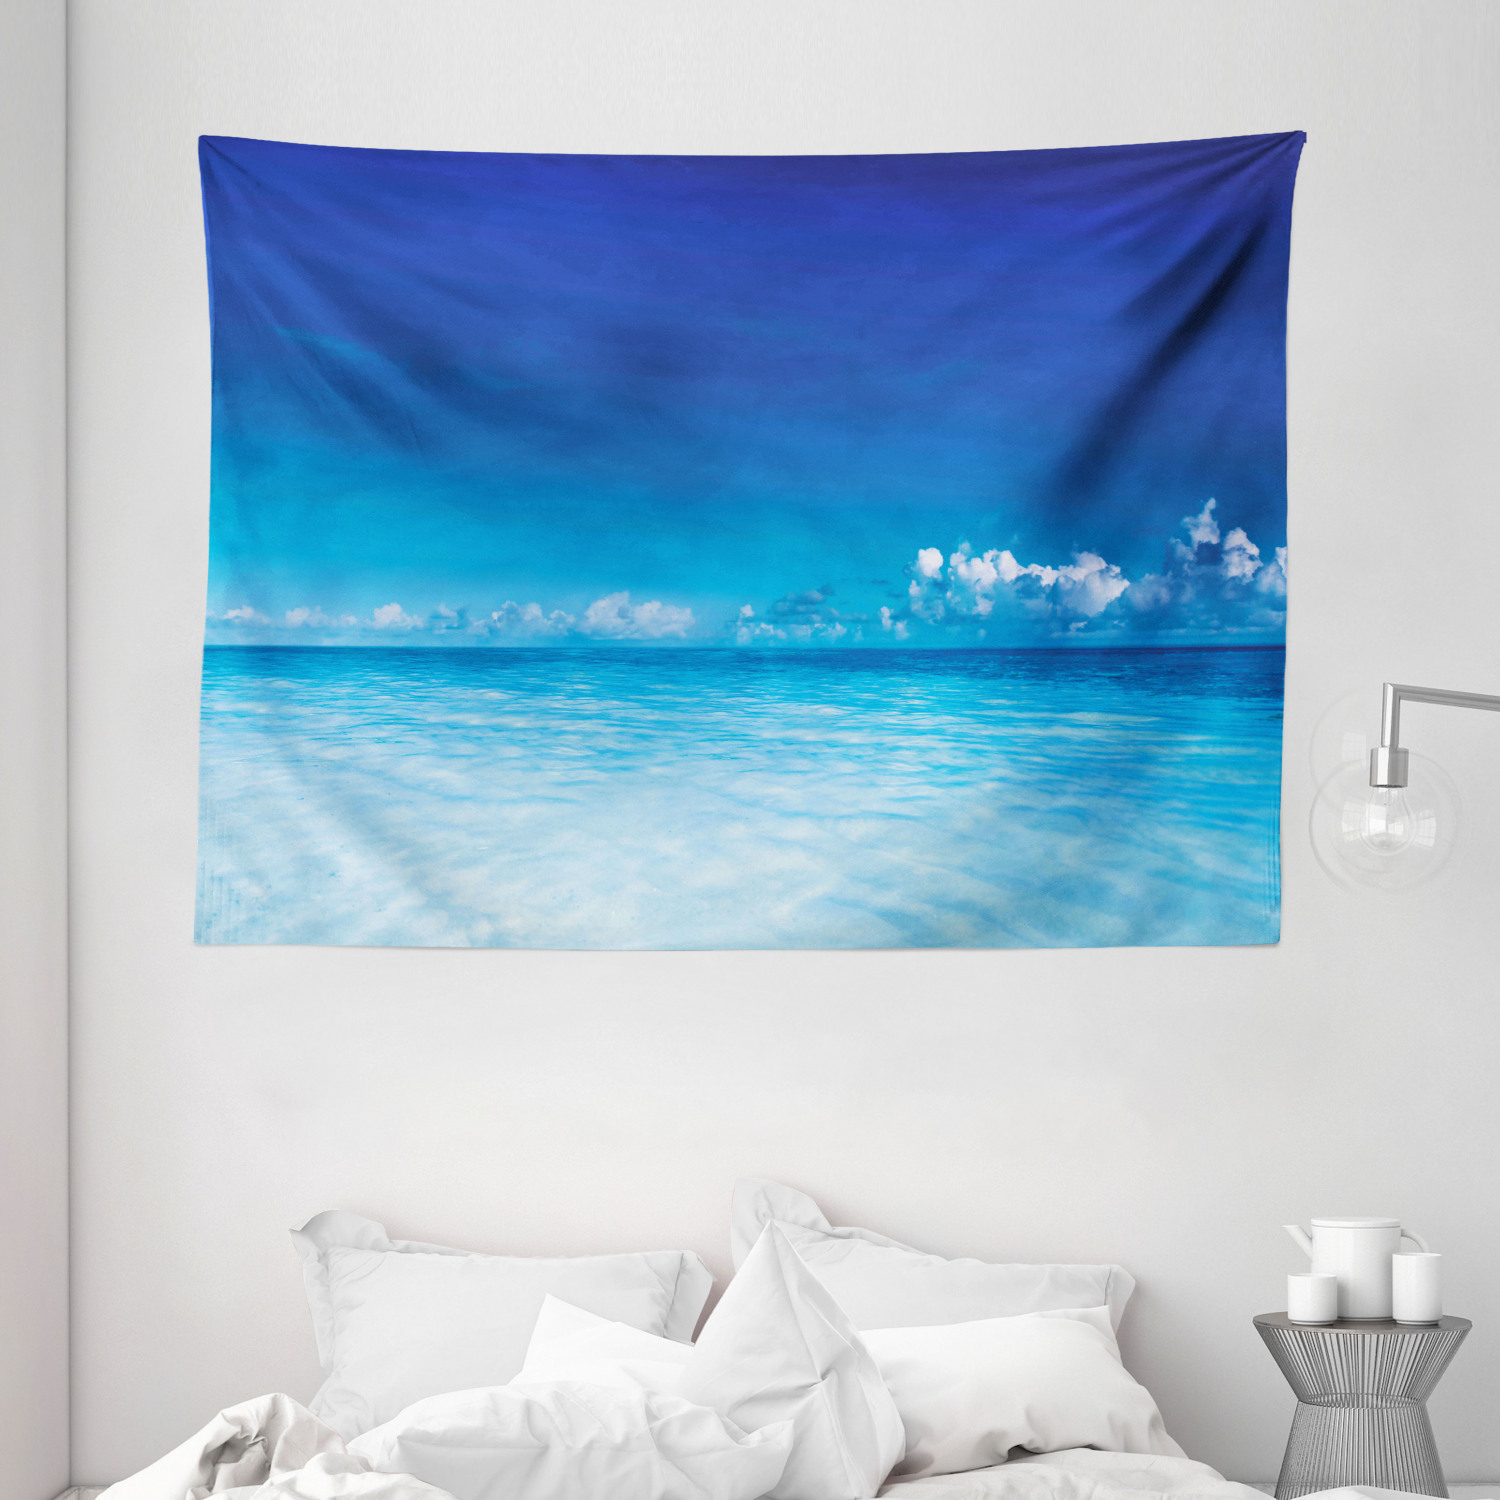 Landscape Tapestry Ocean Scenery Deep Sea Beach Hot Summer Themed Photo Wall Hanging For Bedroom Living Room Dorm Decor 80w X 60l Inches Turquoise Light Blue And Dark By Ambesonne